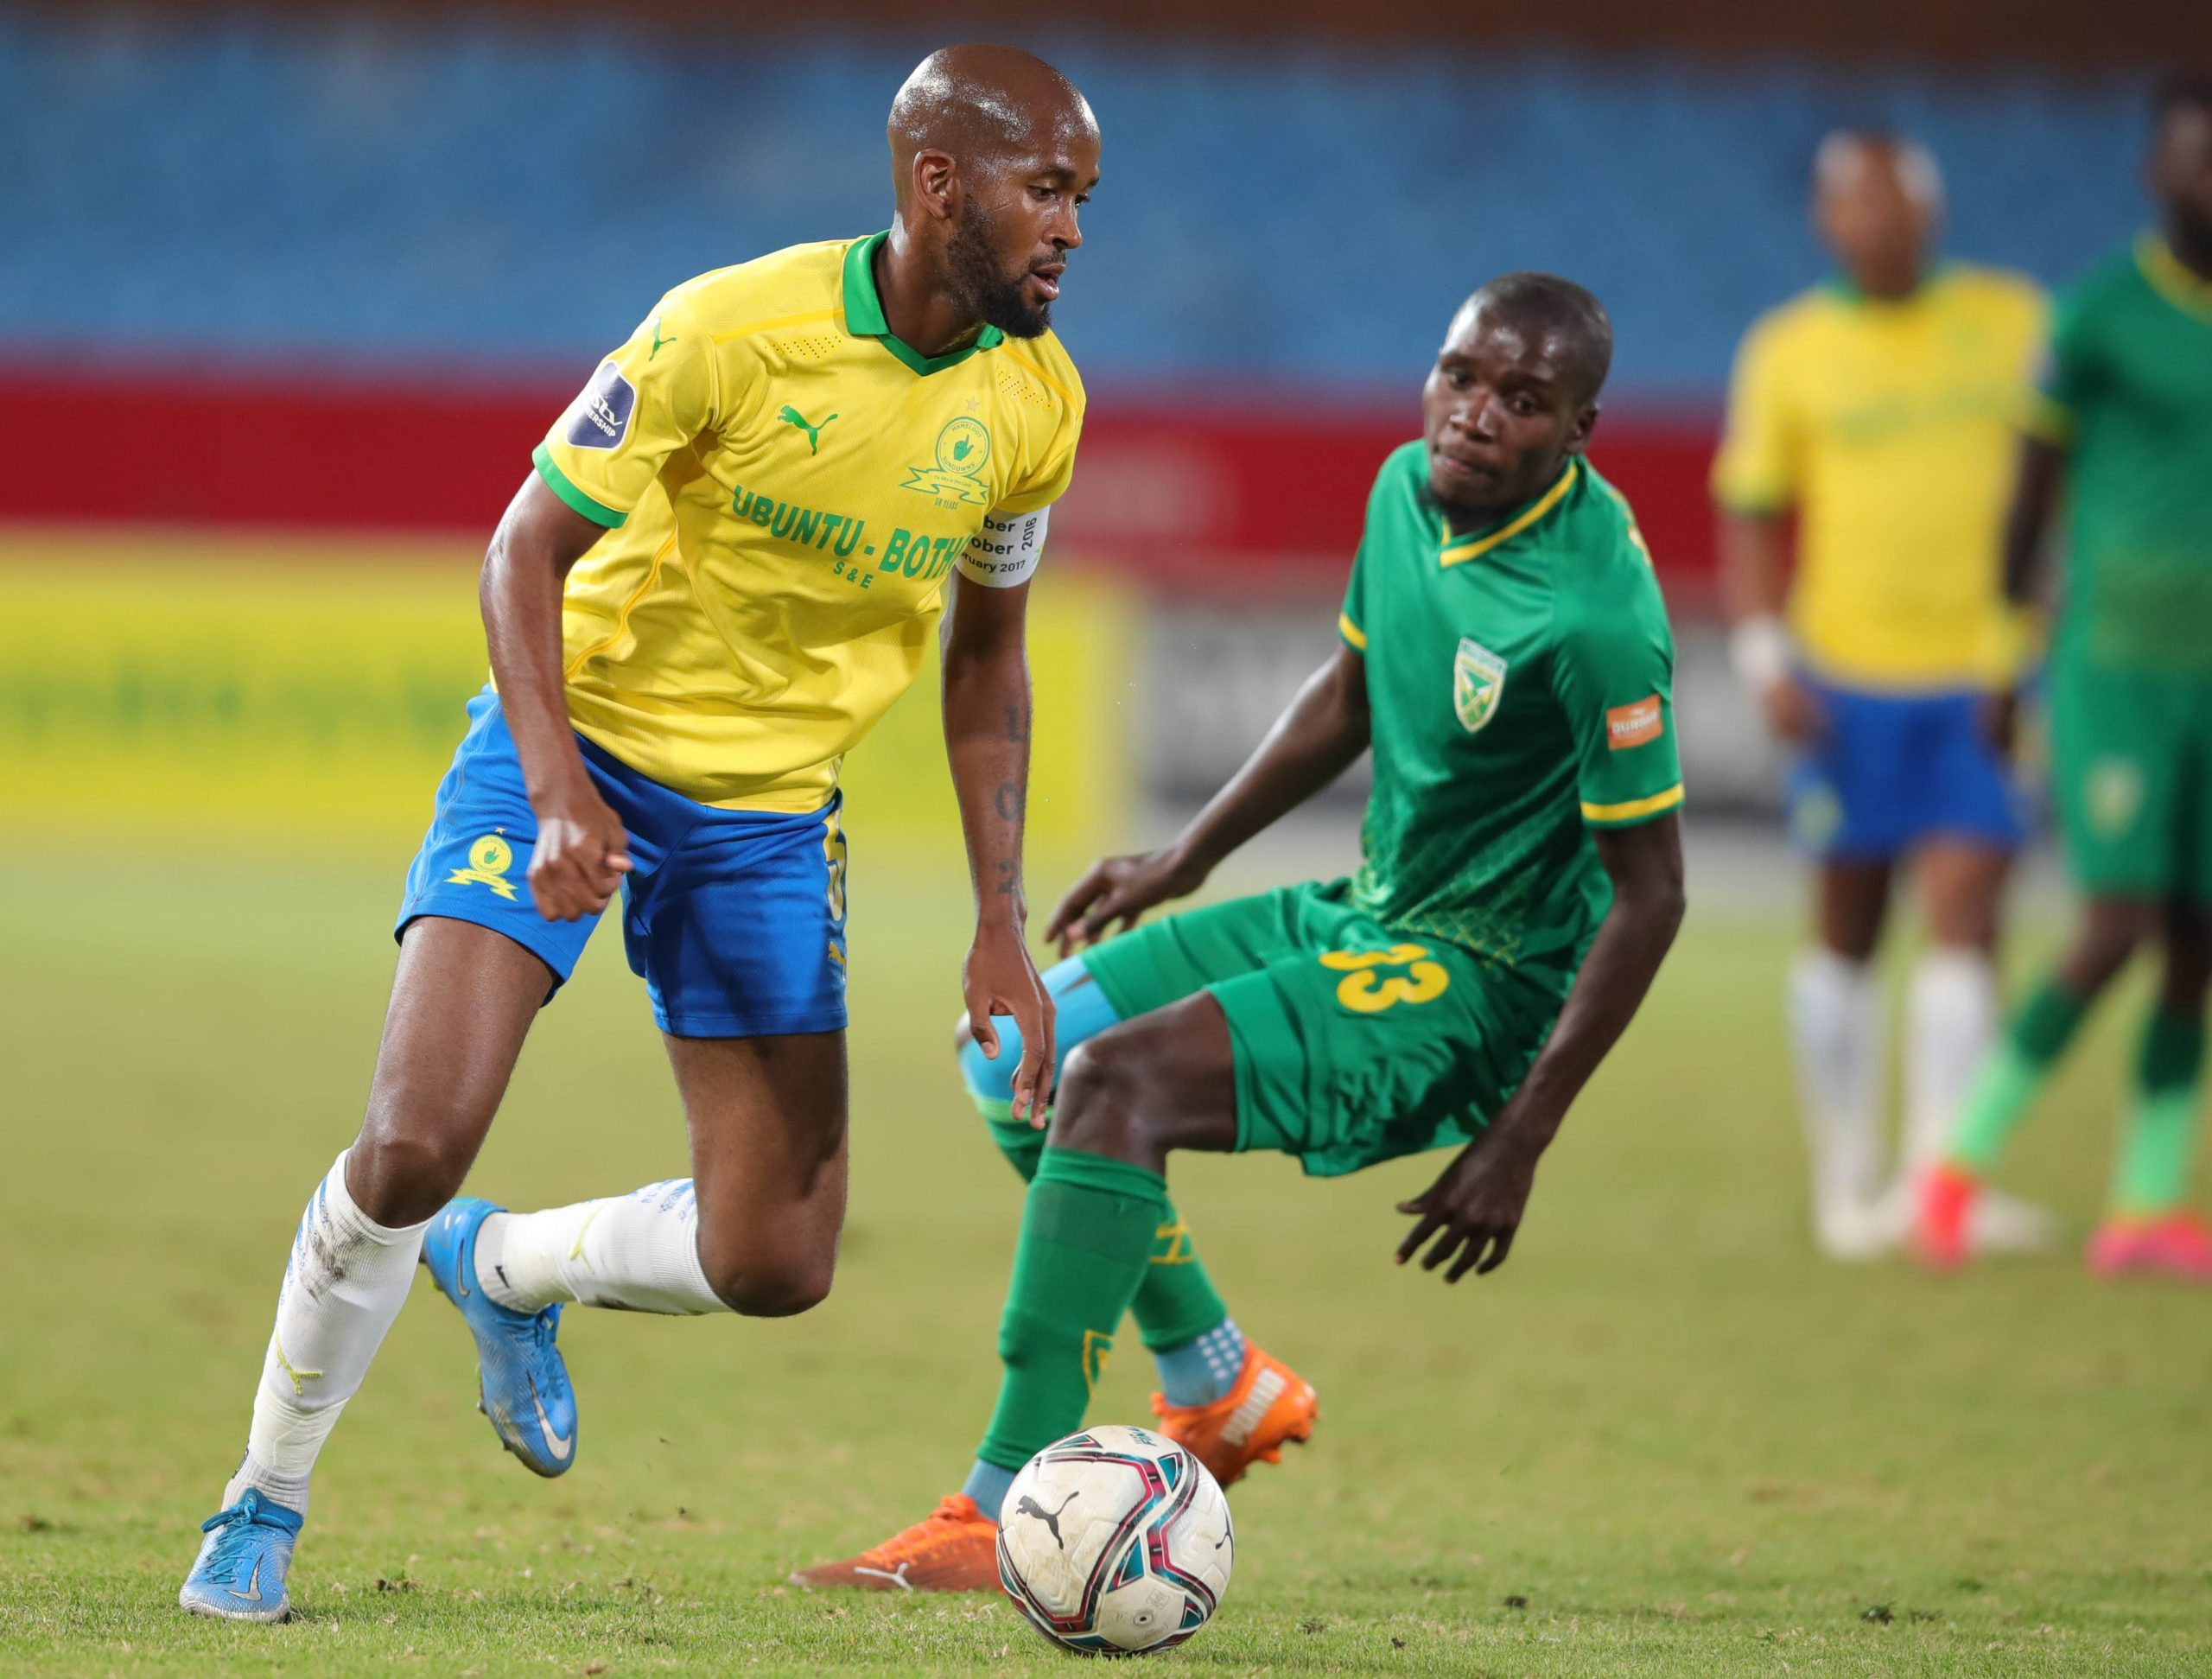 LEADERS SUNDOWNS HELD TO GOALLESS DRAW BY ARROWS